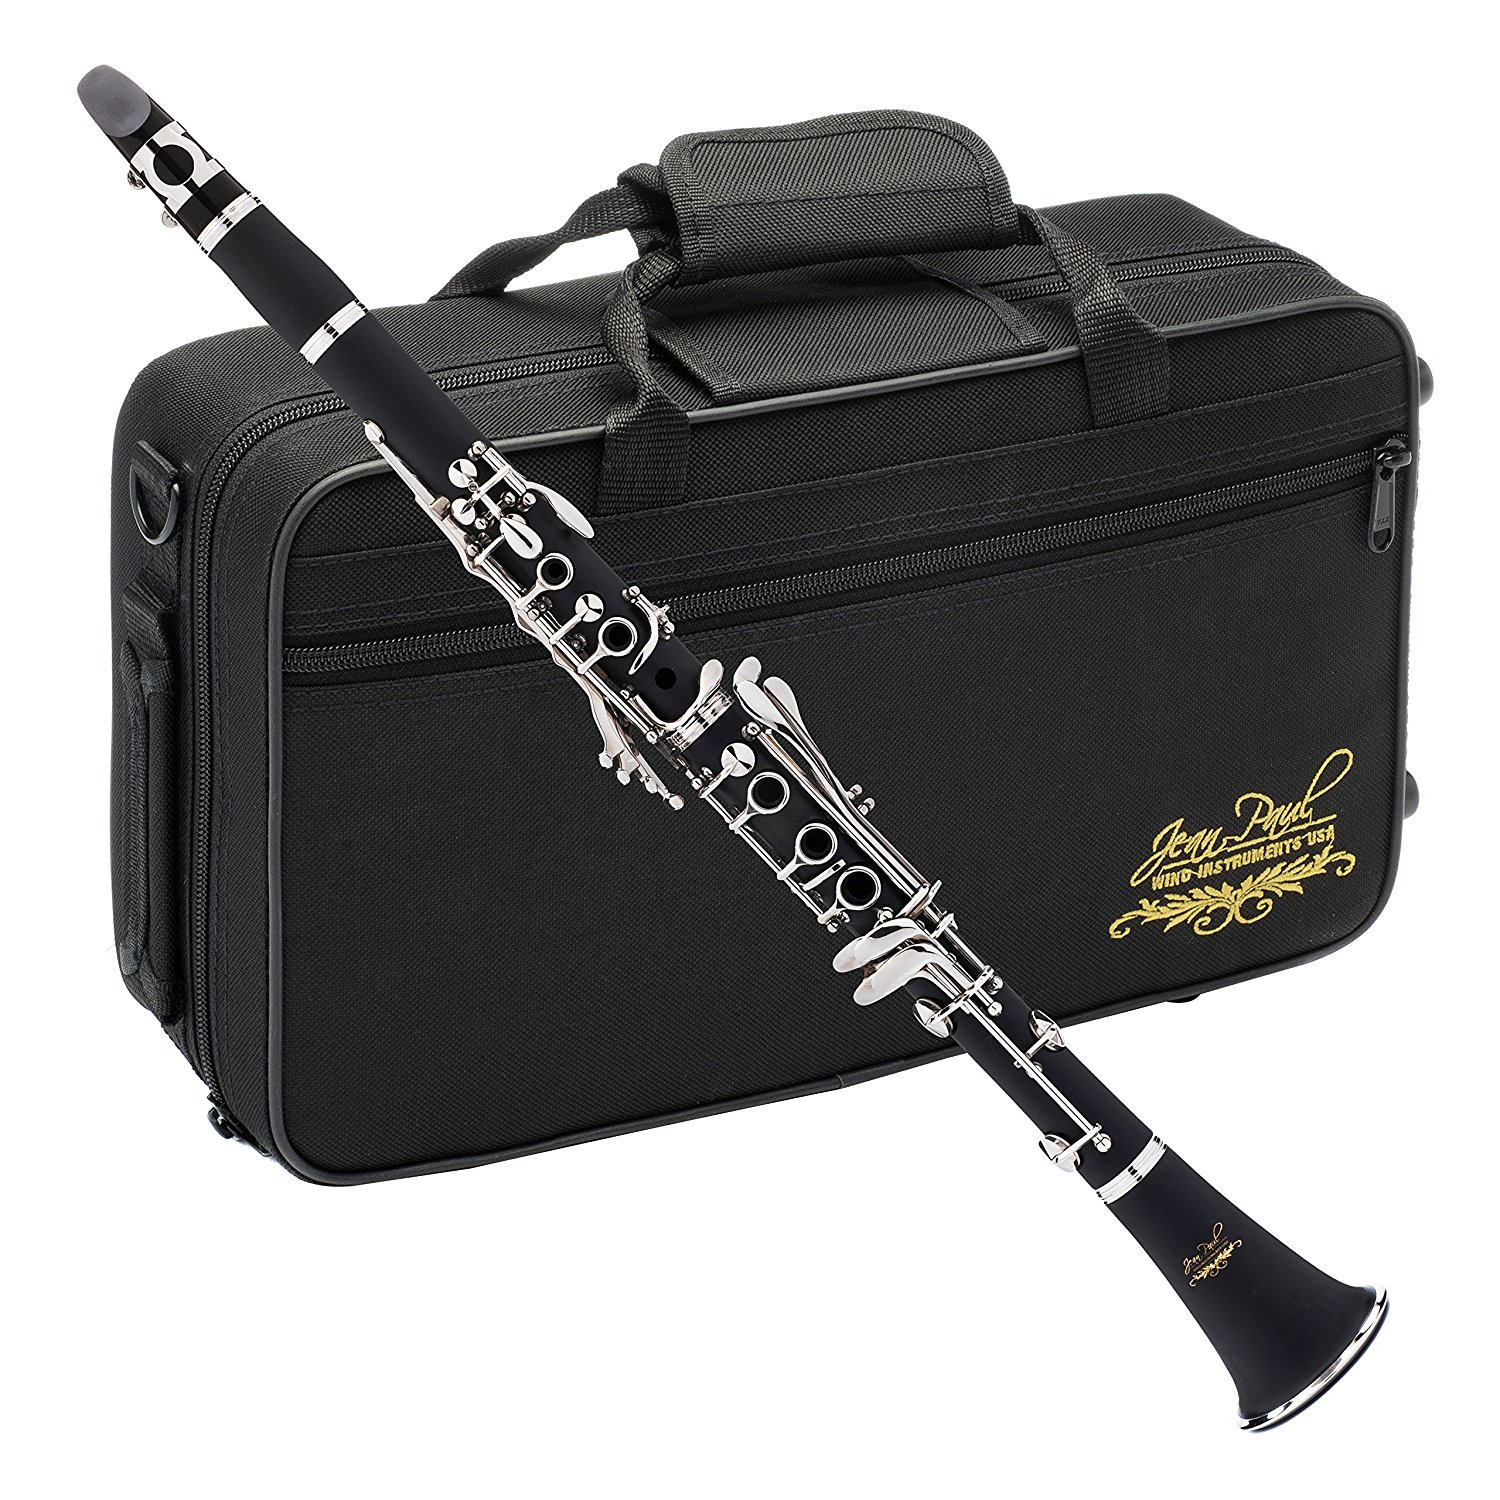 Buy Jean Paul USA CL-300 Student Clarinet